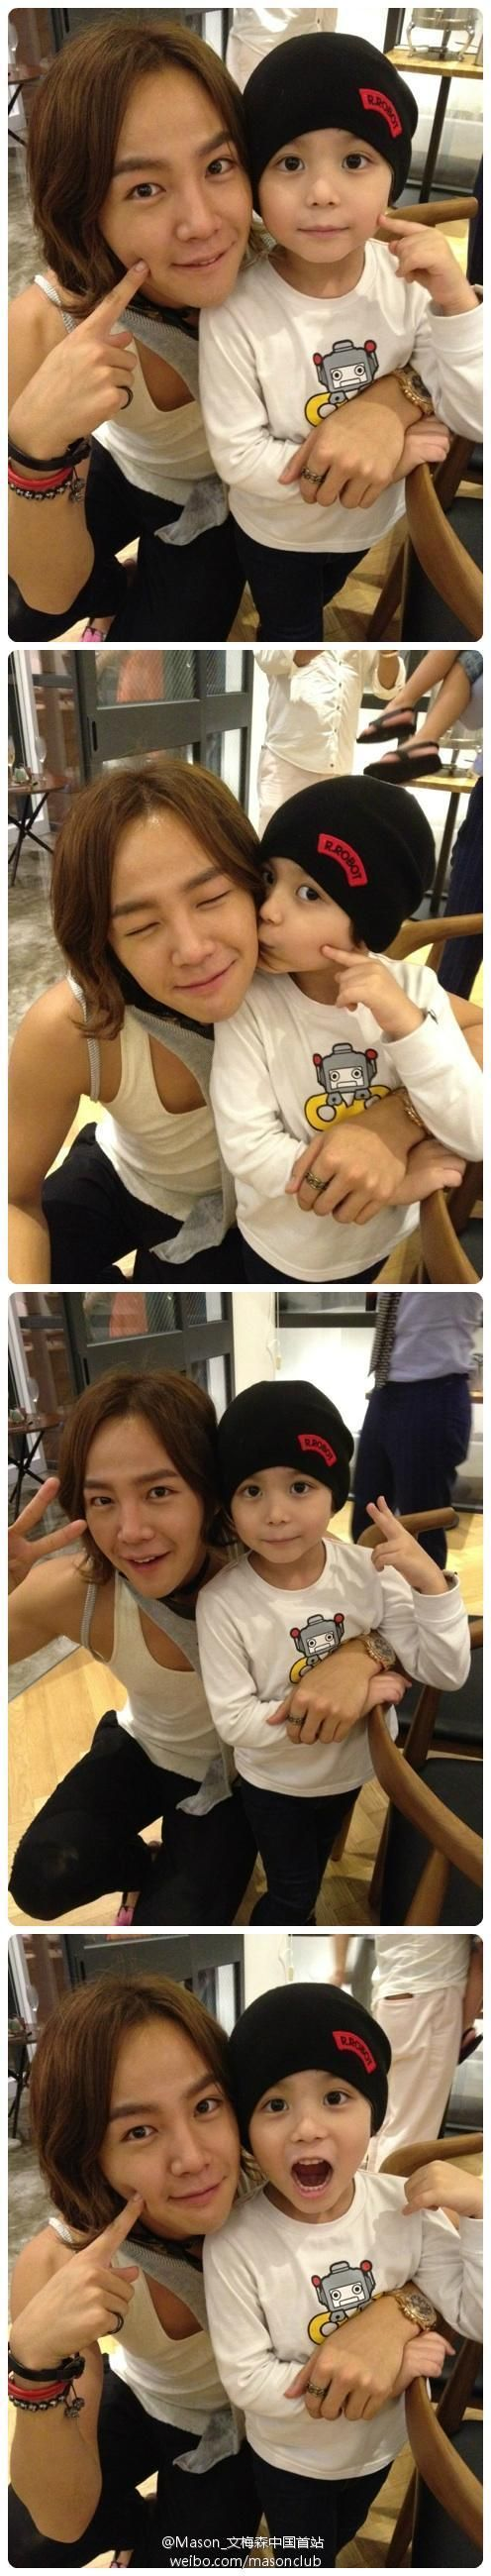 Jang Geun Suk reunion with Moon Mason his co-star (the baby) from Baby and Me. DIS TSO CUTE.: